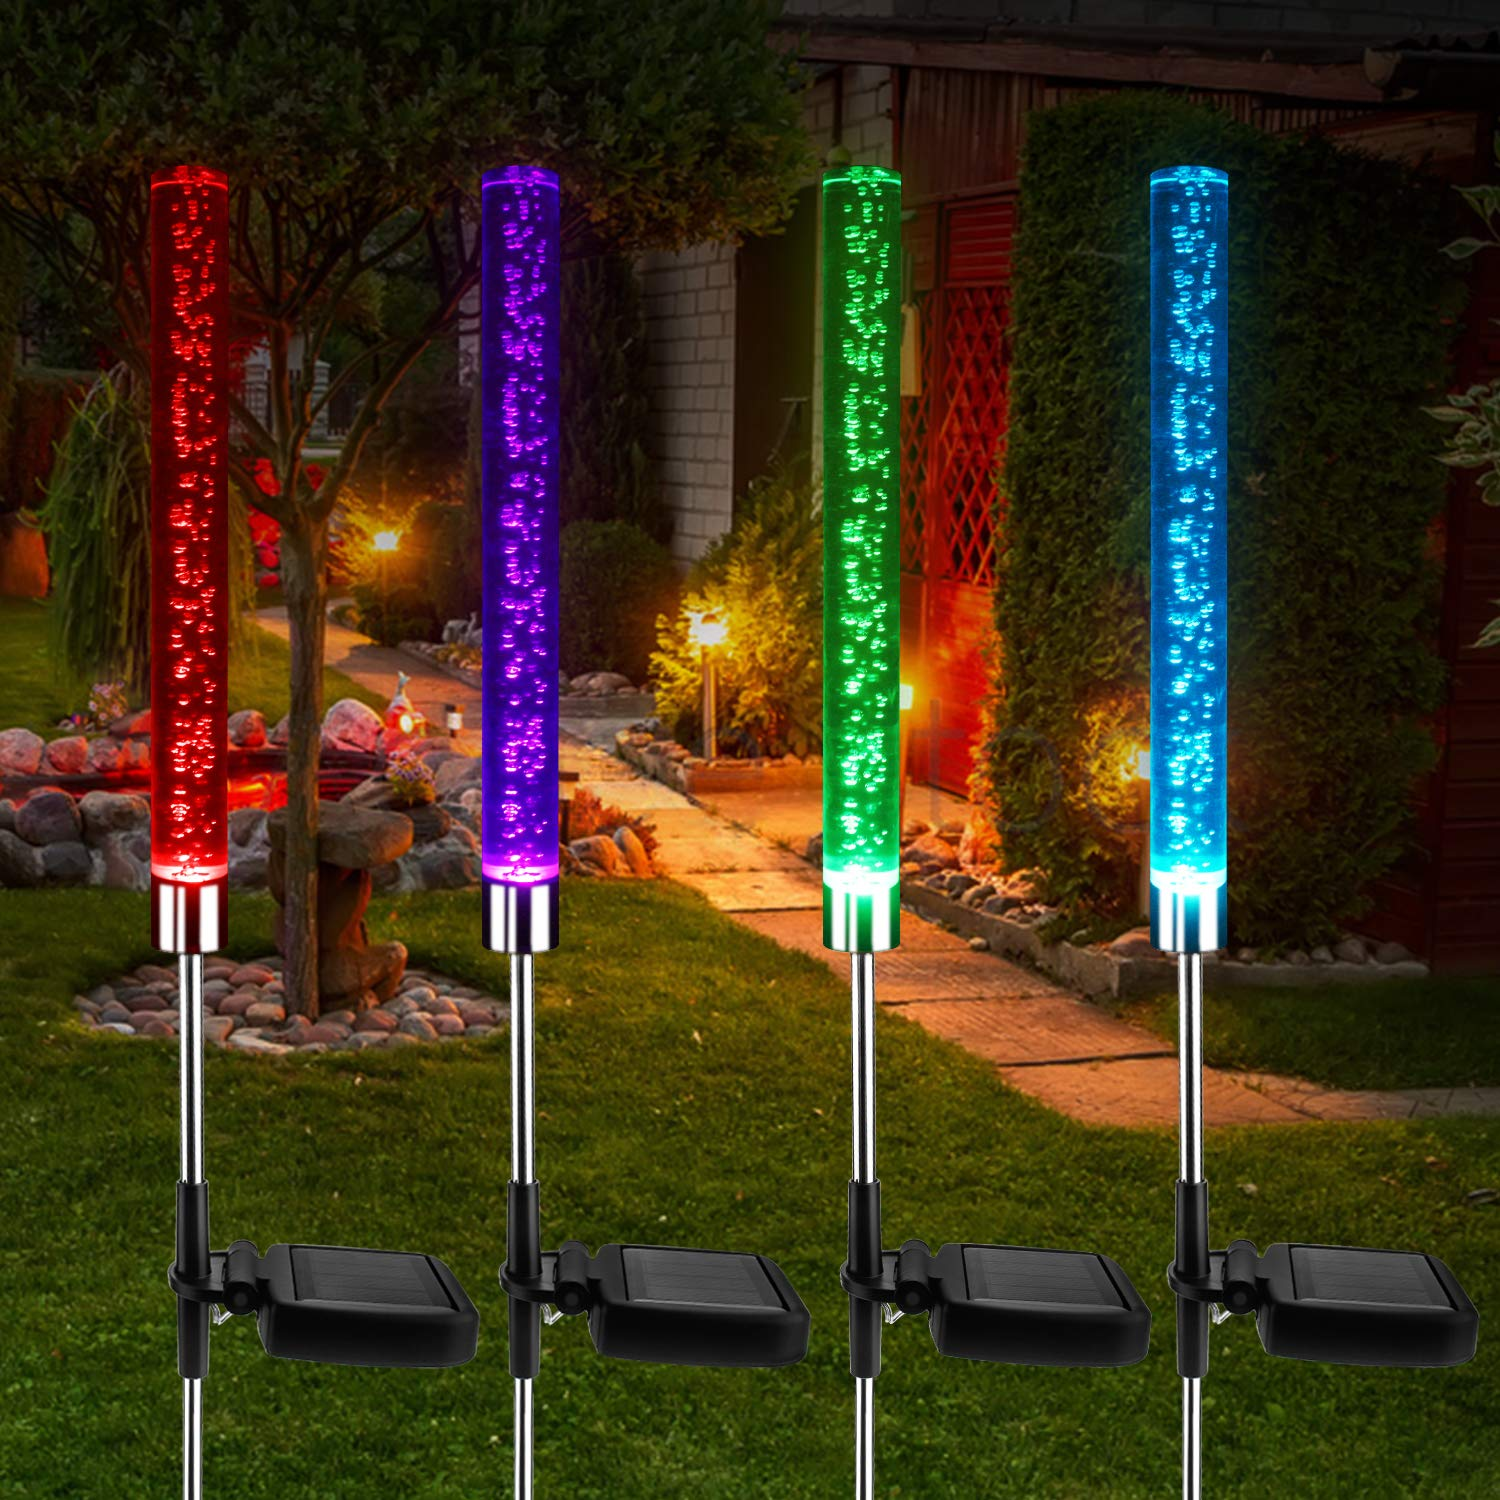 Beinhome 4pcs Garden Solar Bubble Lights Outdoor Solar Powered Acrylic Tube LED Lights 8 Colors Changing Outdoor Stake Lights for Garden Patio Pathway Backyard Decoration